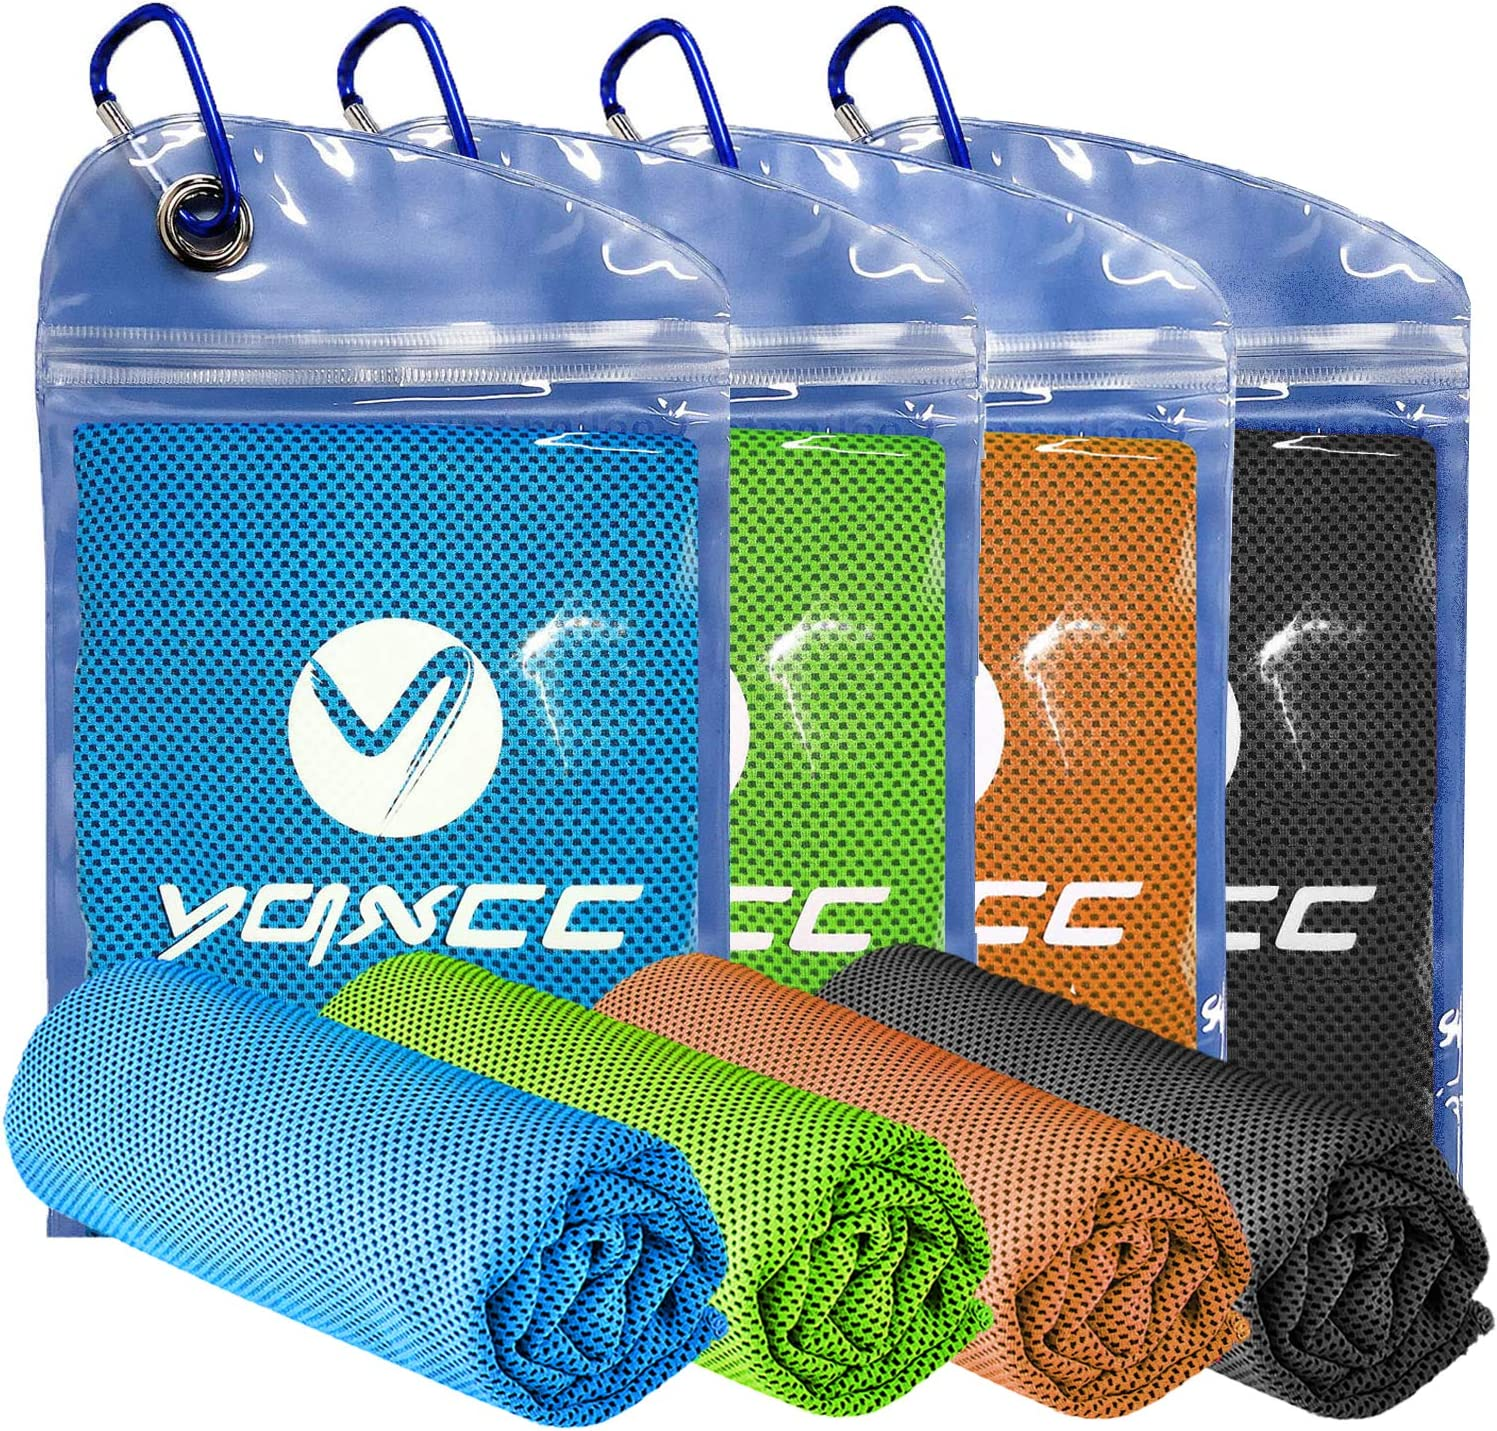 """YQXCC Cooling Towel 4 Packs (47""""x12"""") Microfiber Towel Yoga Towel for Men or Women Ice Cold Towels for Yoga Gym Travel Camping Golf Football & Outdoor Sports (Light Blue/Dark Gray/Orange/Green)"""